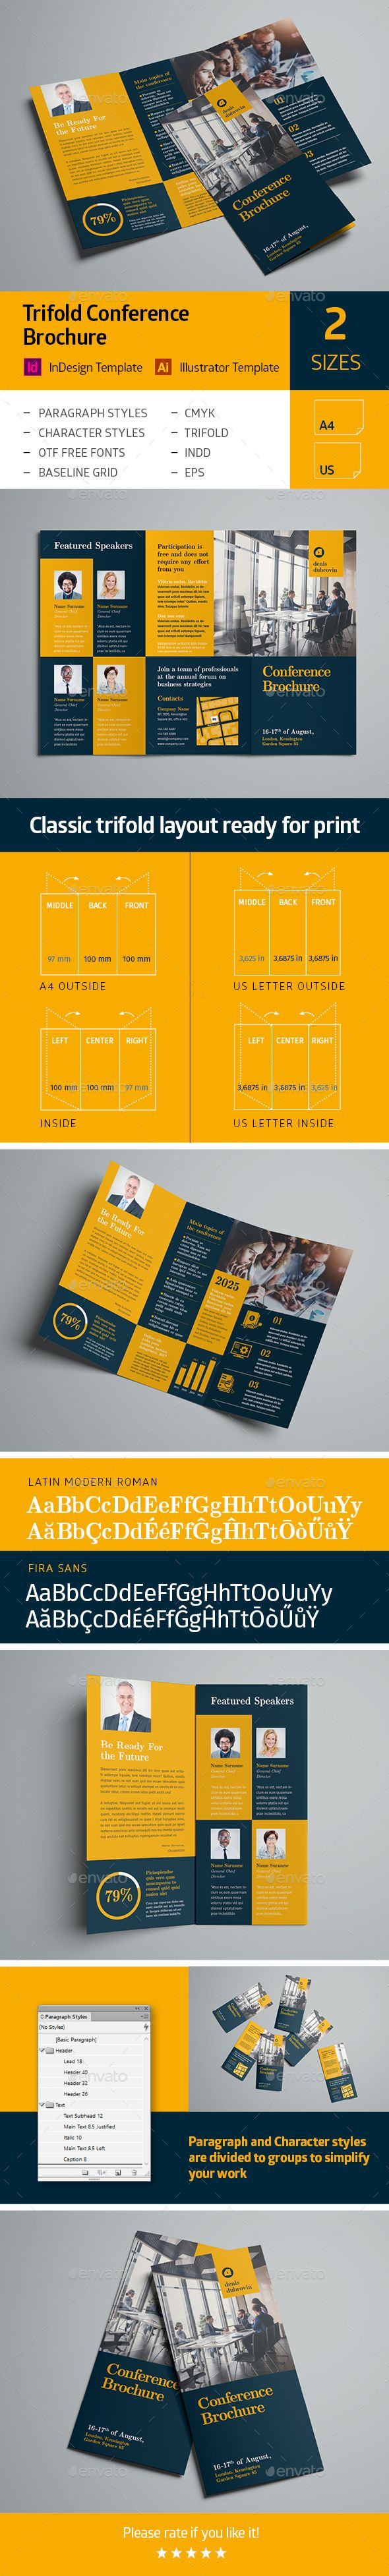 Trifold Conference Brochure  Brochures Brochure Template And